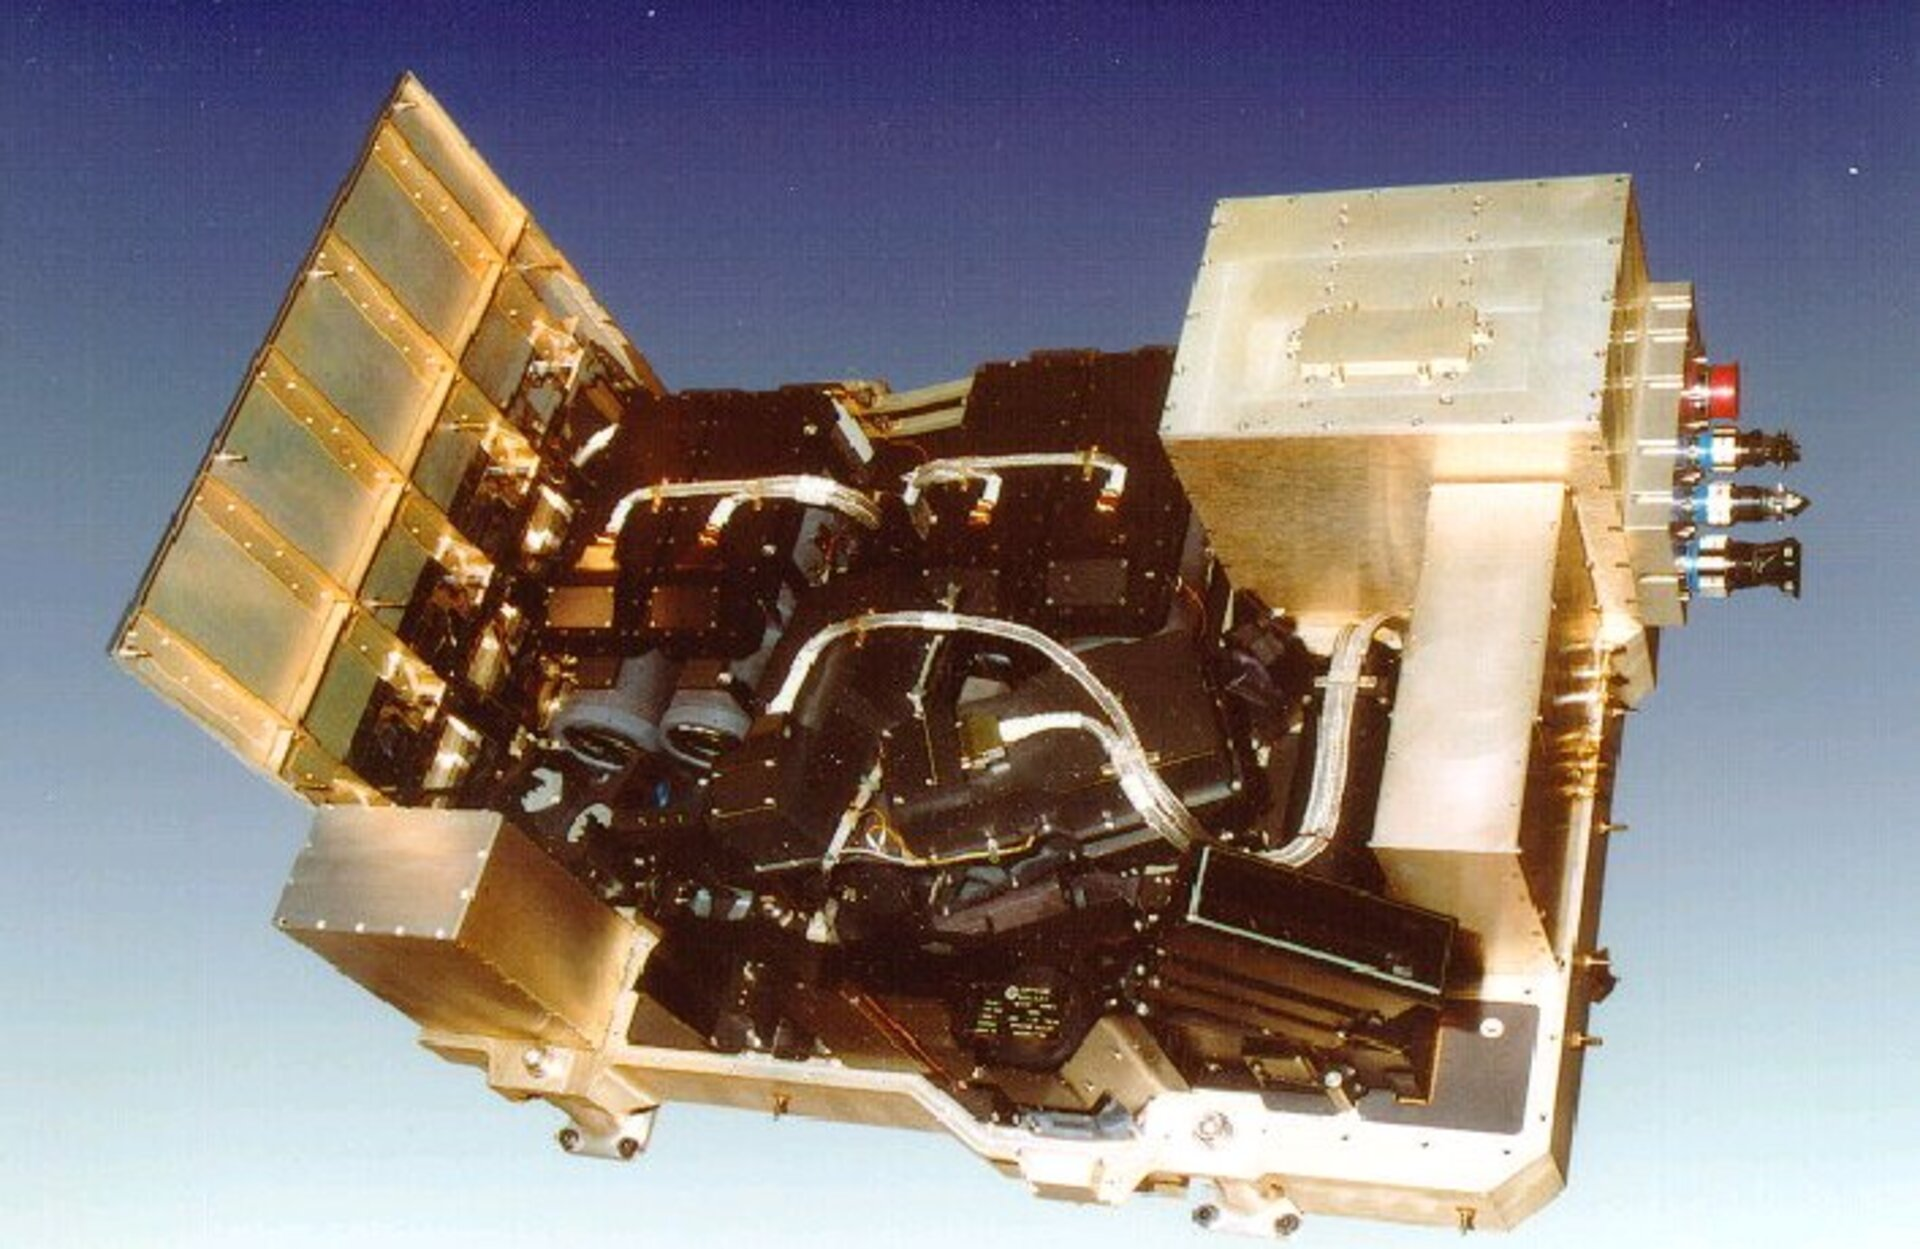 GOME-2 to be carried on MetOp